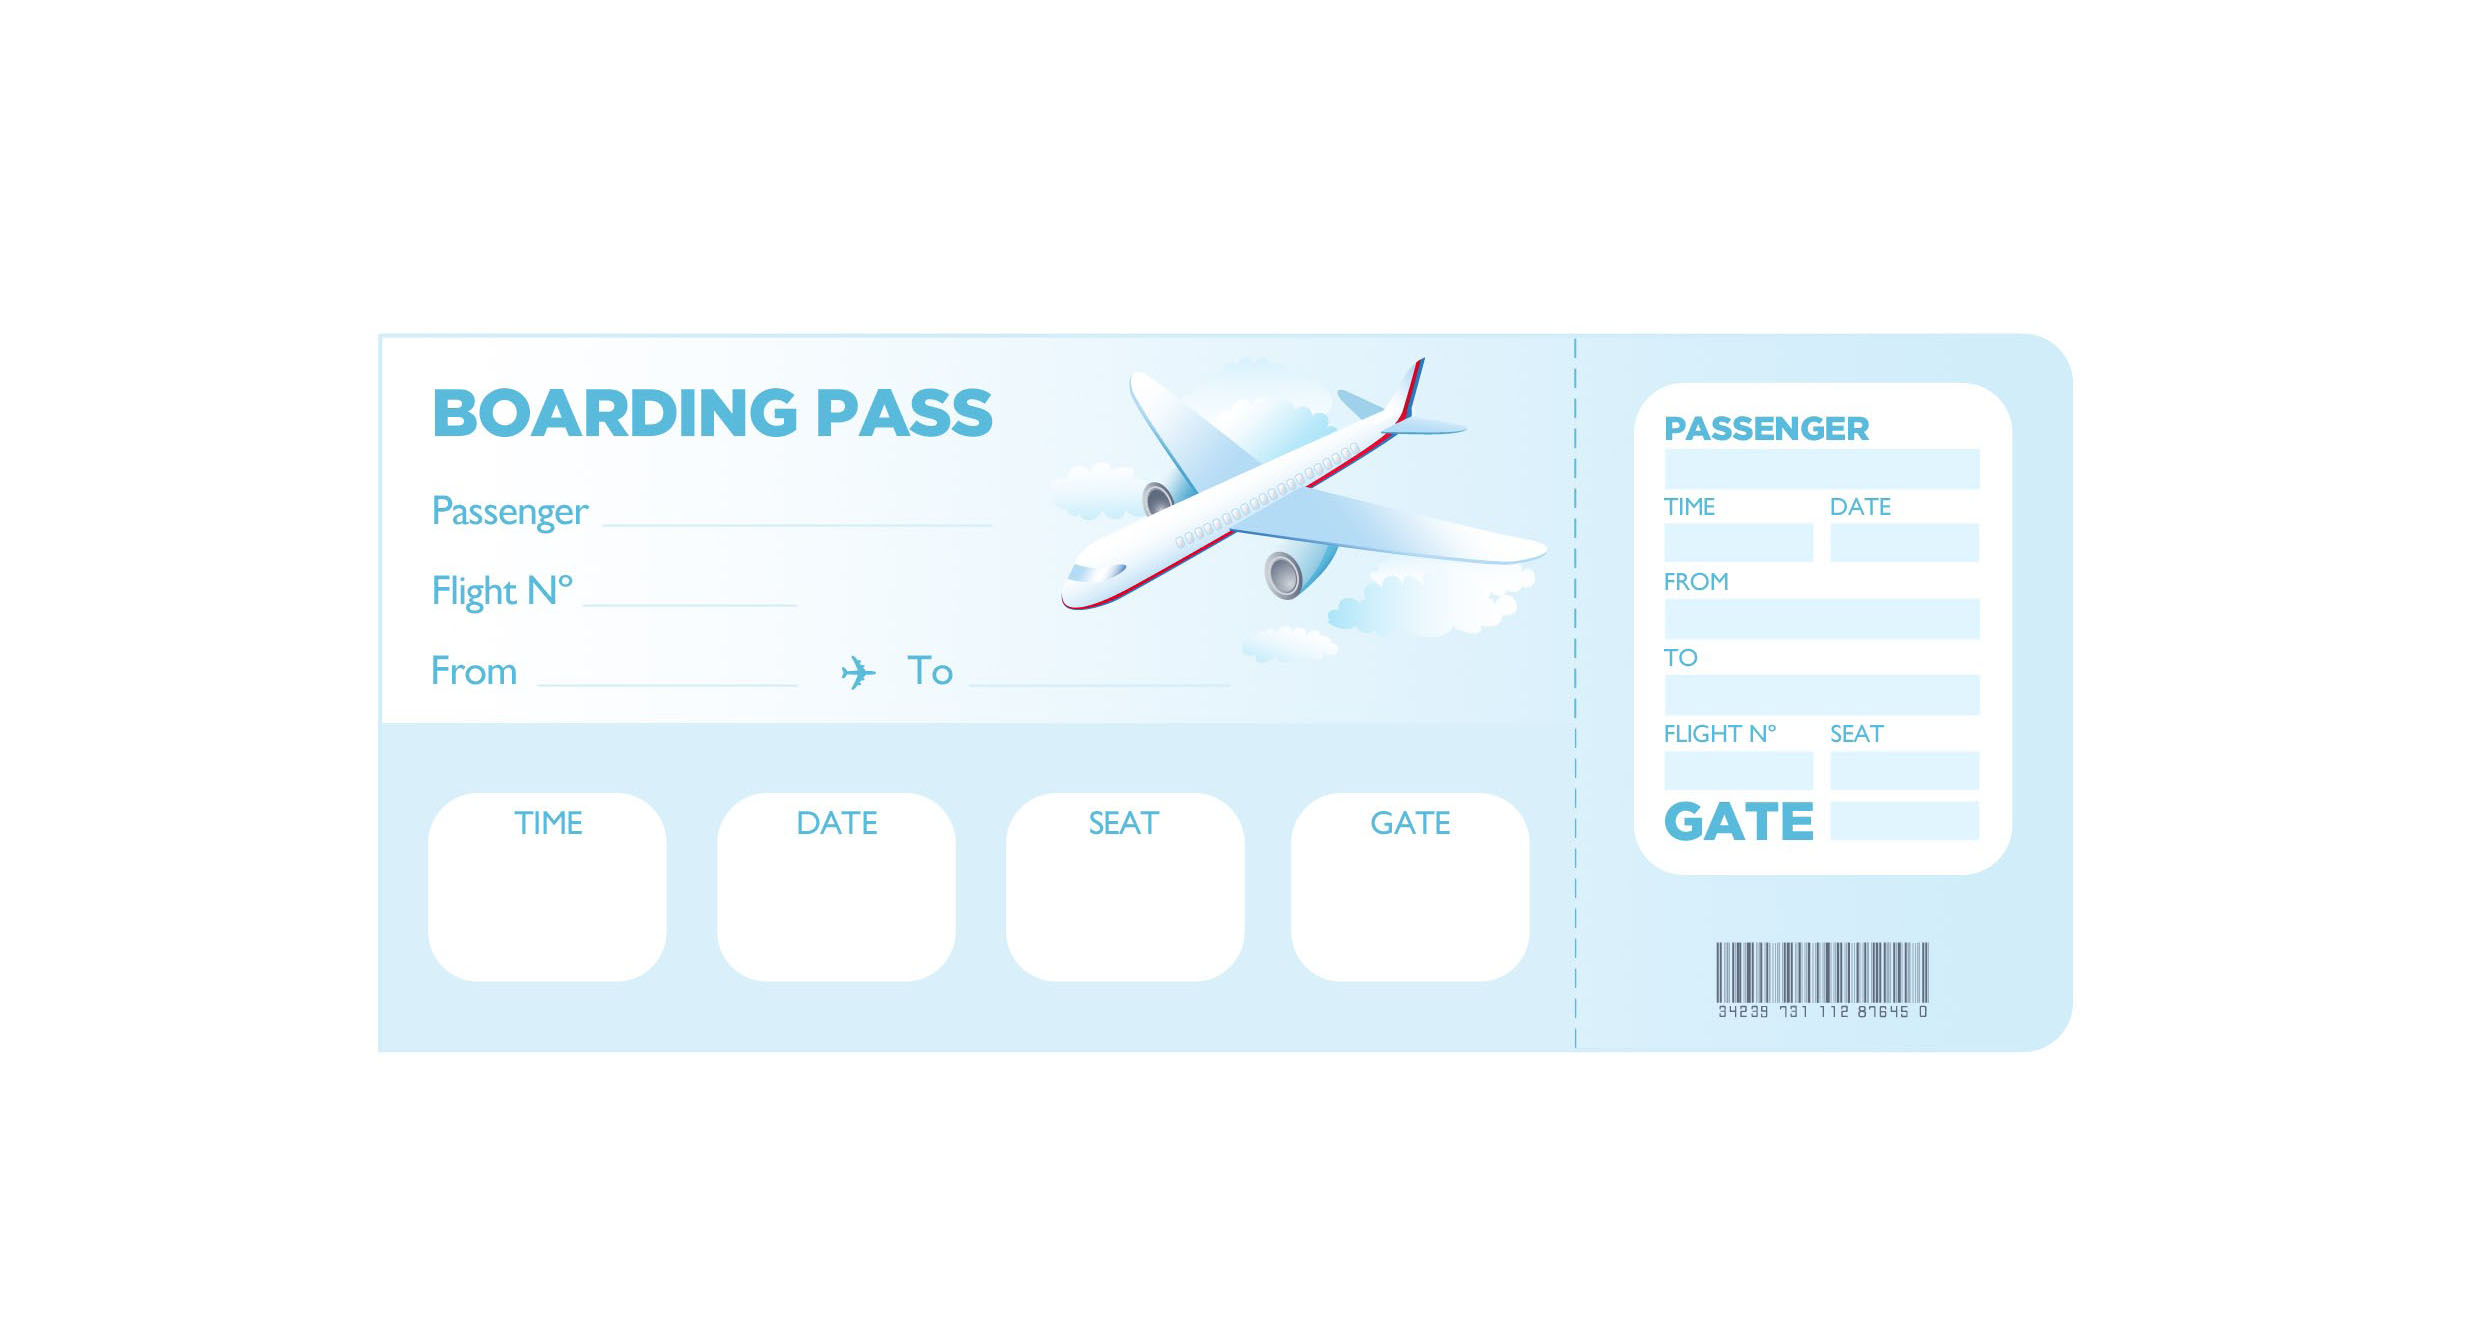 ... for the passport and boarding pass over at Paper Zip that h2TqiXik